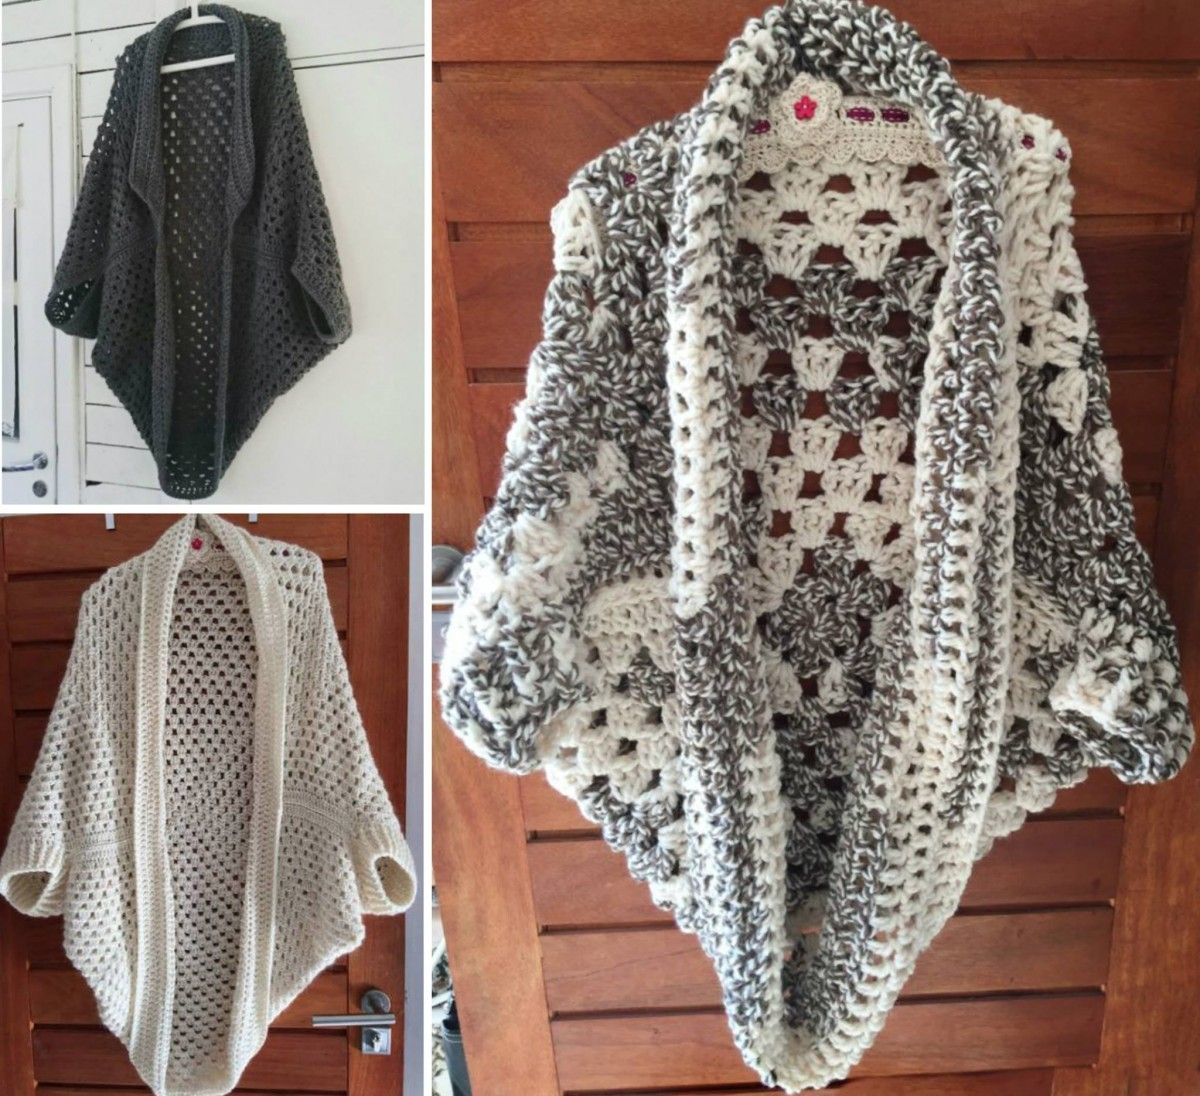 Crochet Cocoon Shrug Pattern Ideas | Pinterest | Handarbeiten ...